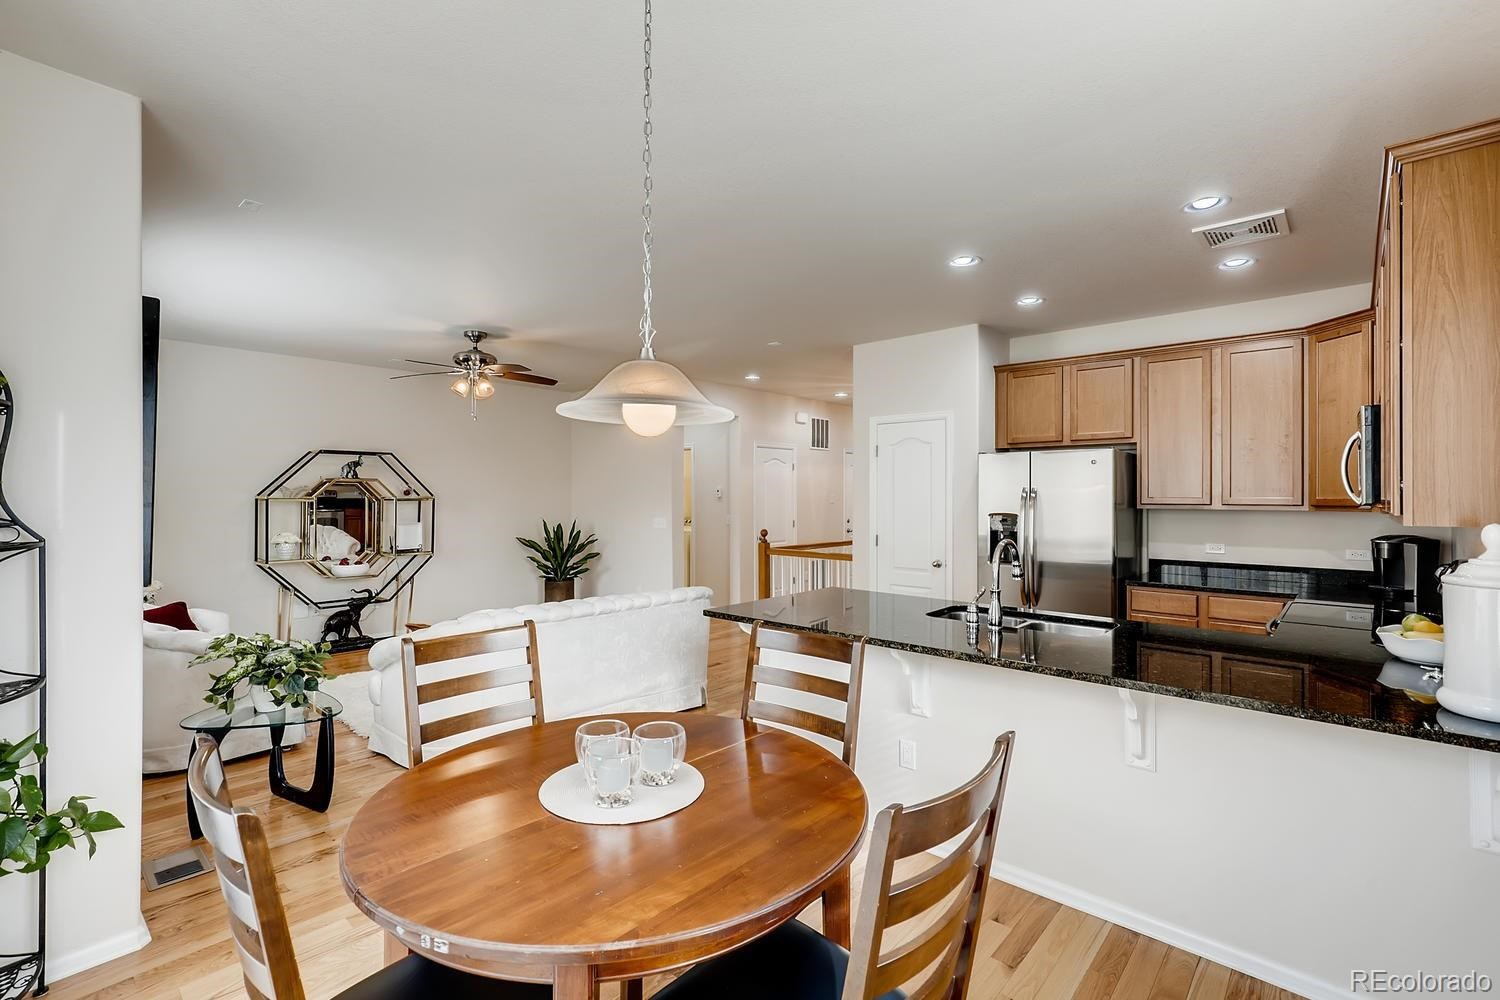 MLS# 8893940 - 15 - 1373 Armstrong Drive, Longmont, CO 80504